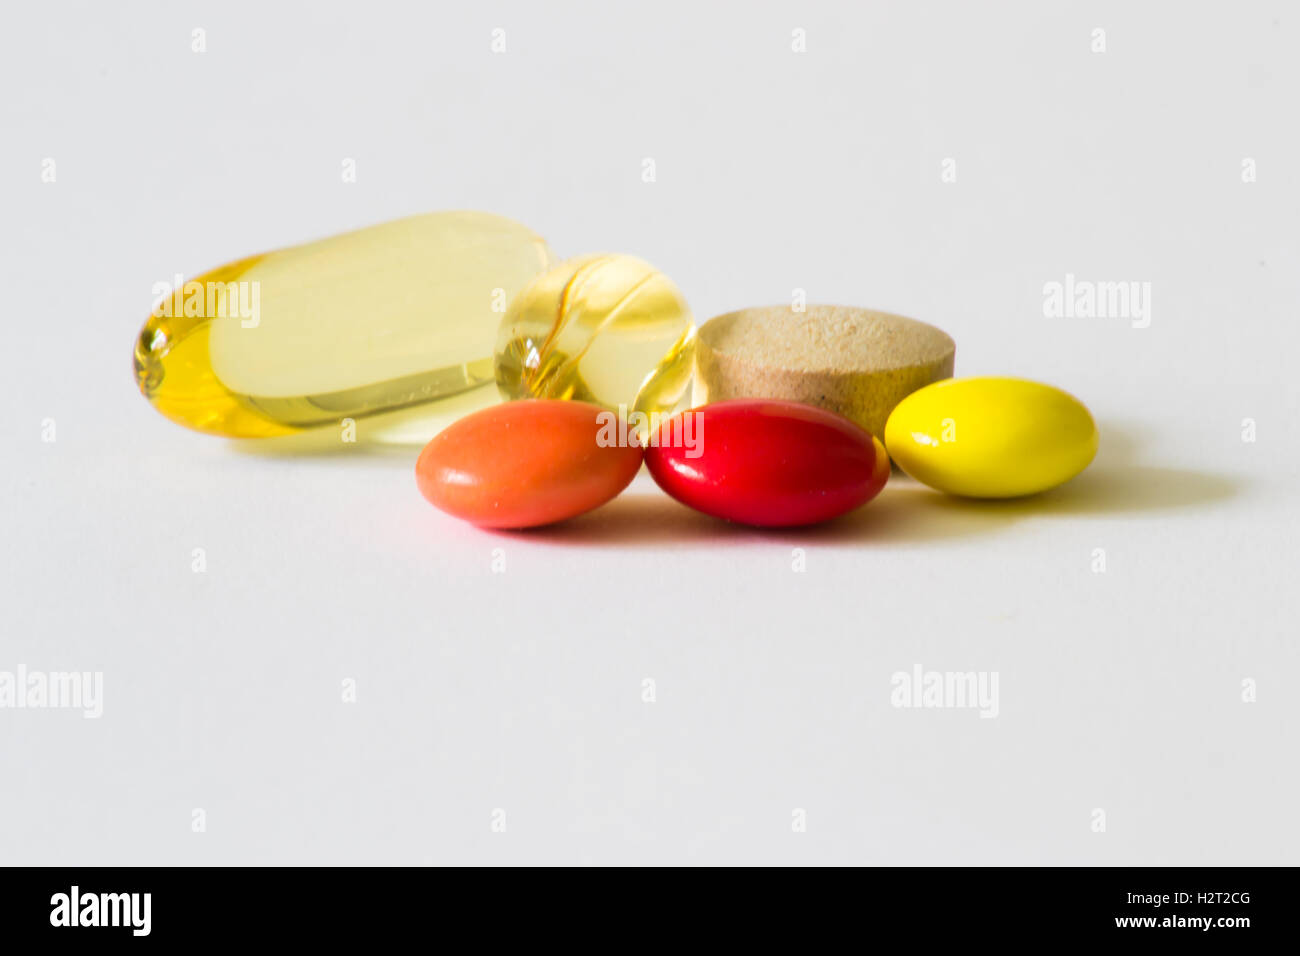 Pills on white background. Tablets. Supplements, vitamins, macro. - Stock Image